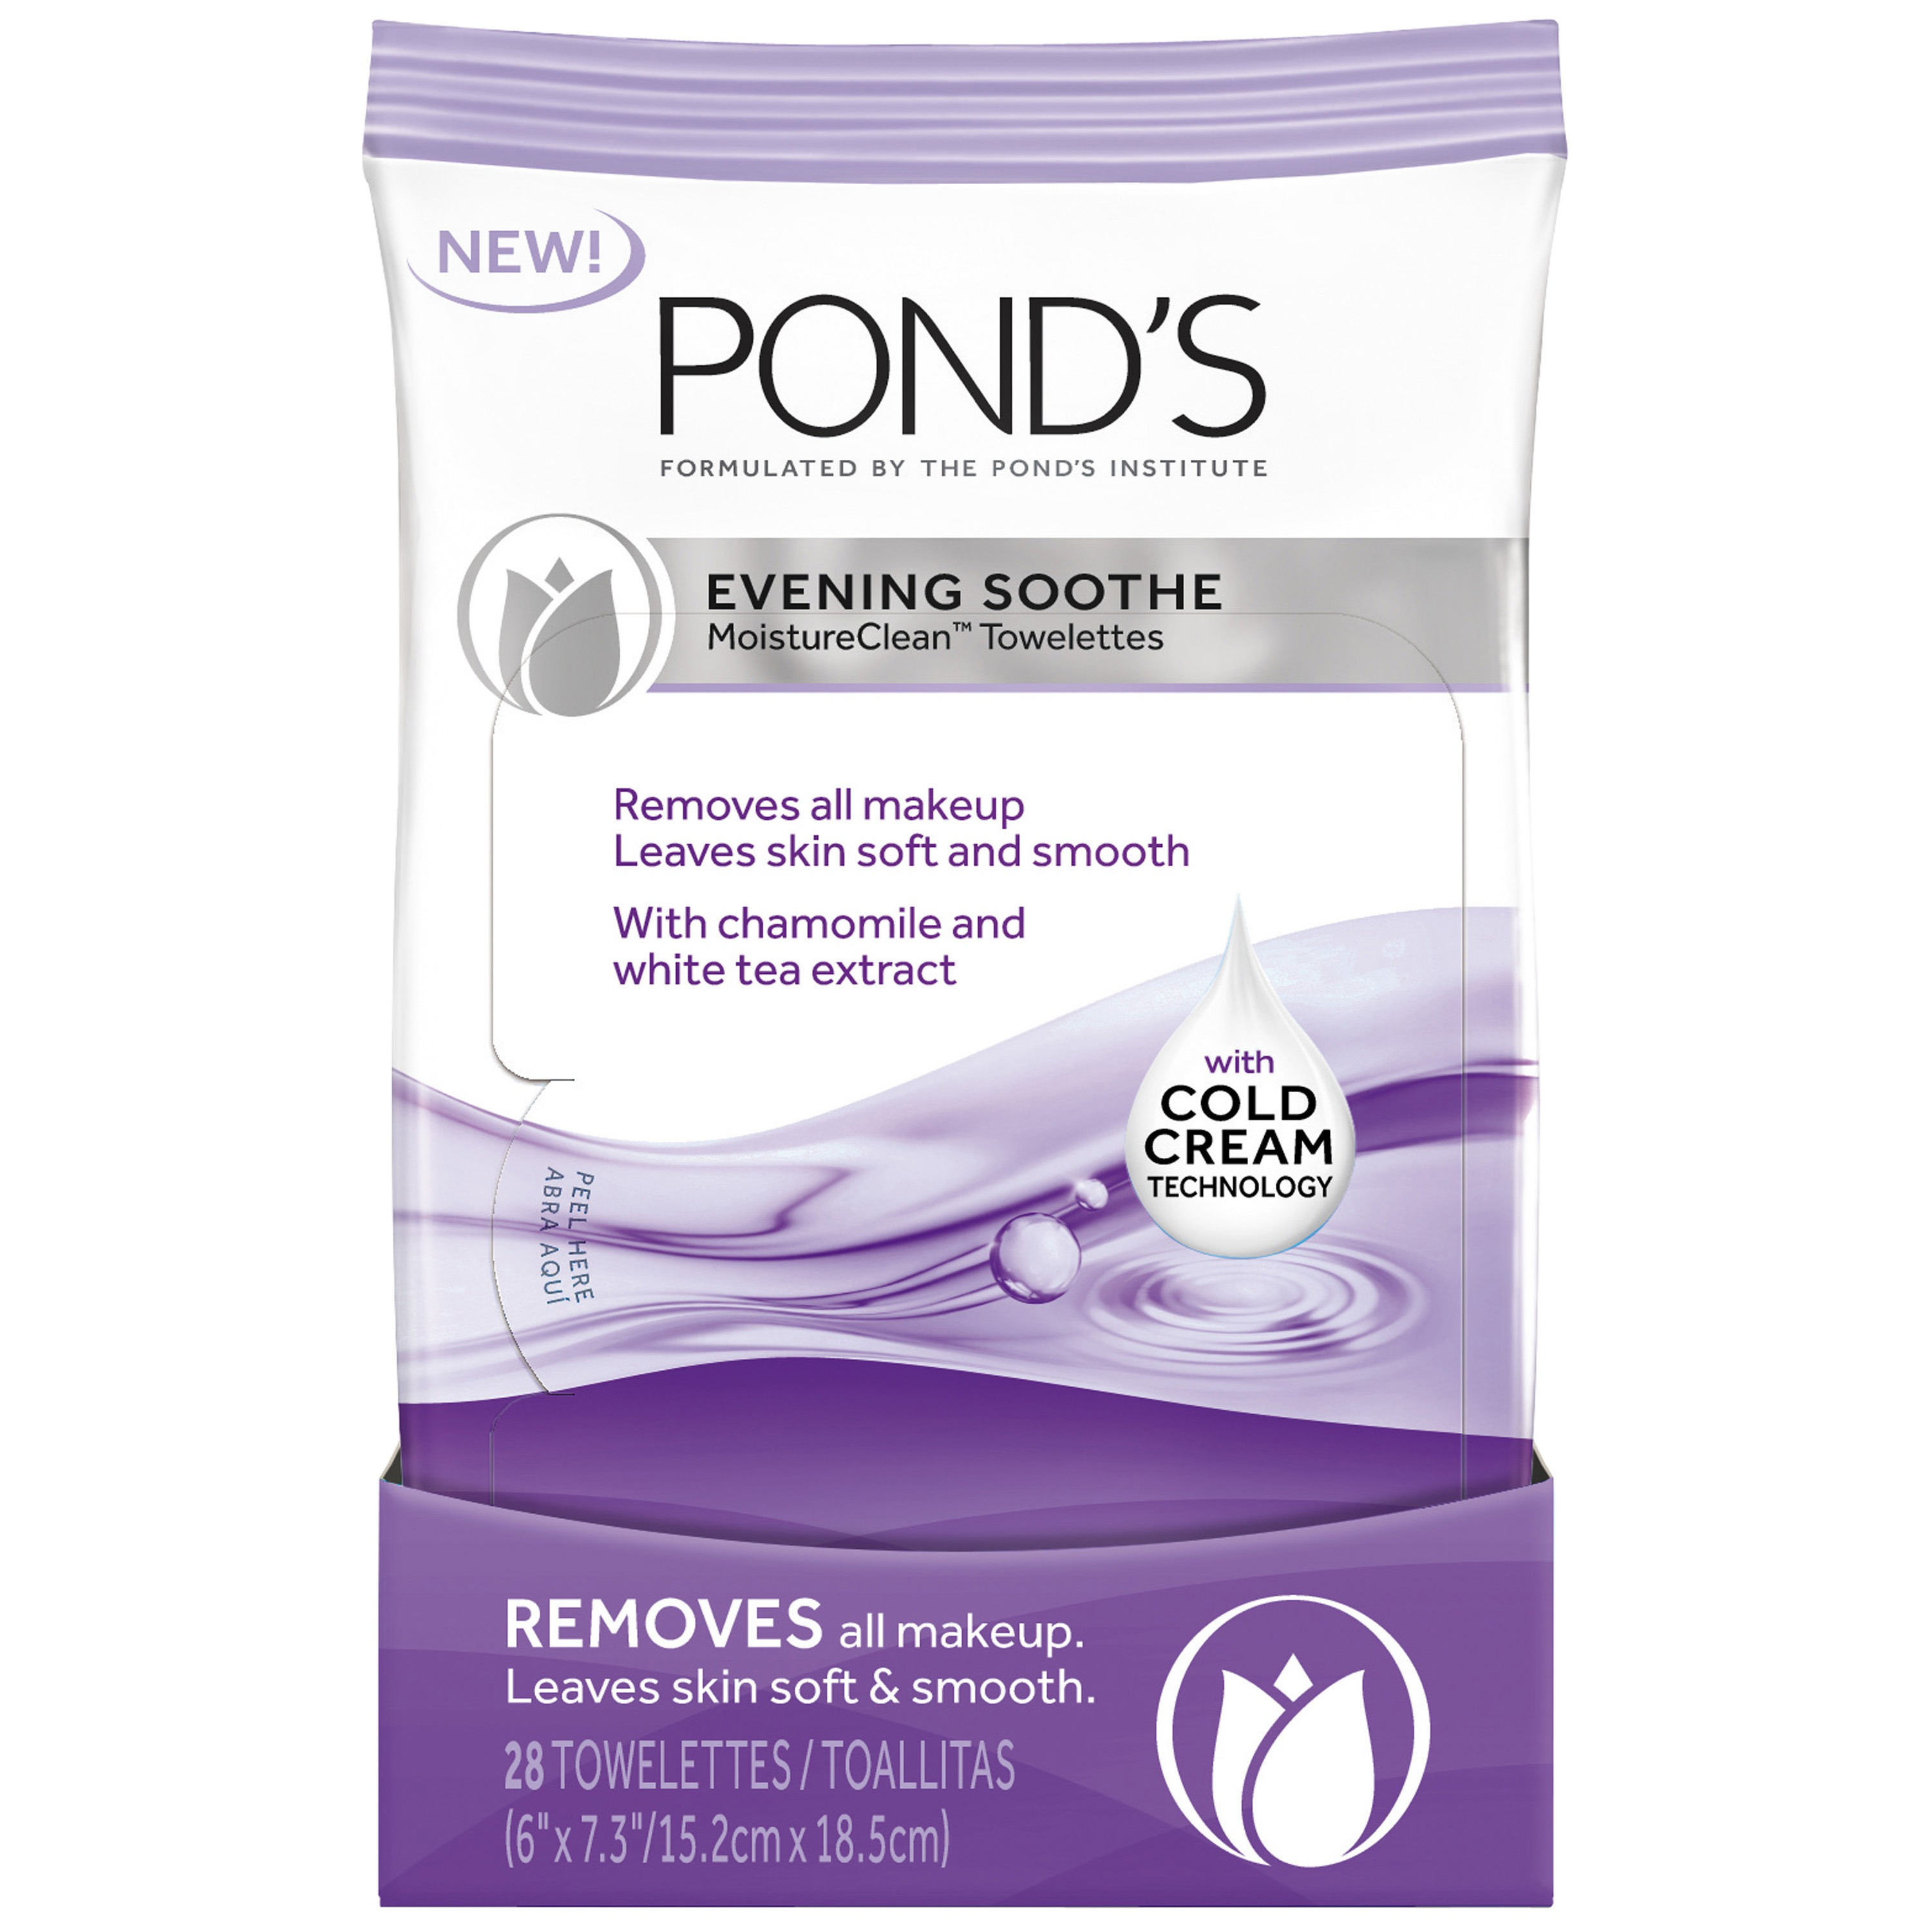 Pond's MoistureClean Makeup Remover Wipes Evening Soothe 28 ct